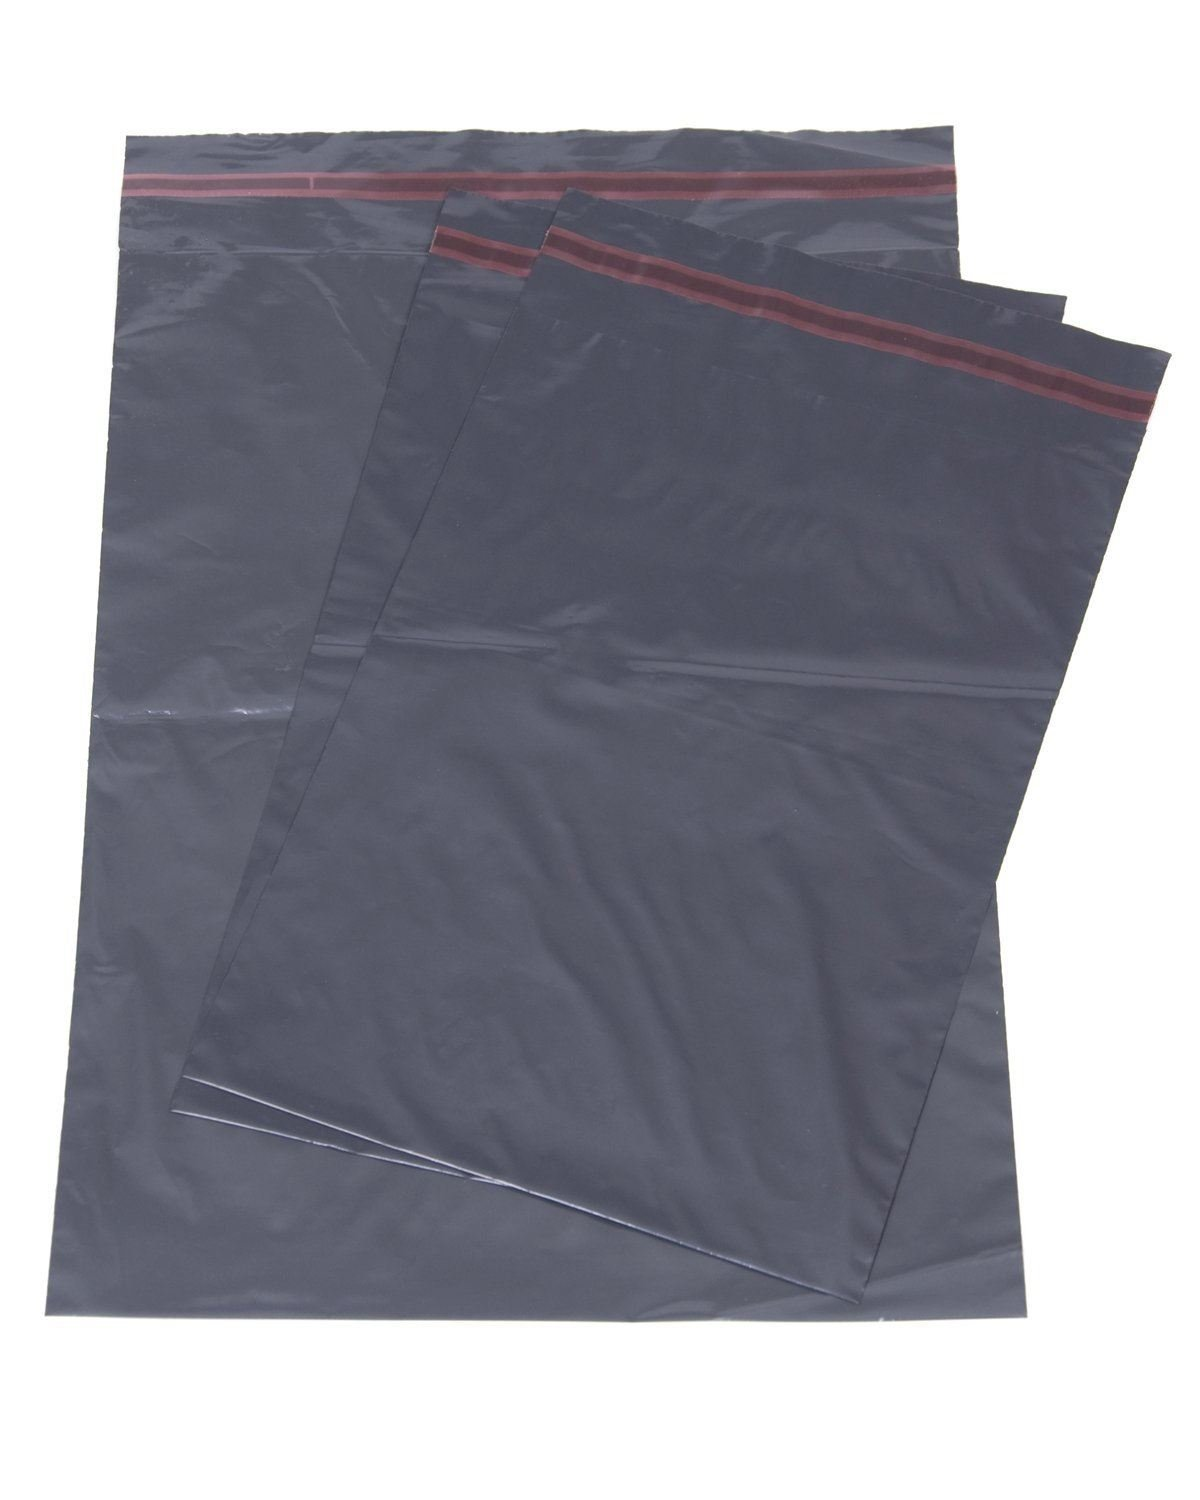 500x Grey Mailing Courier Postal Bags - 10'' x 14''